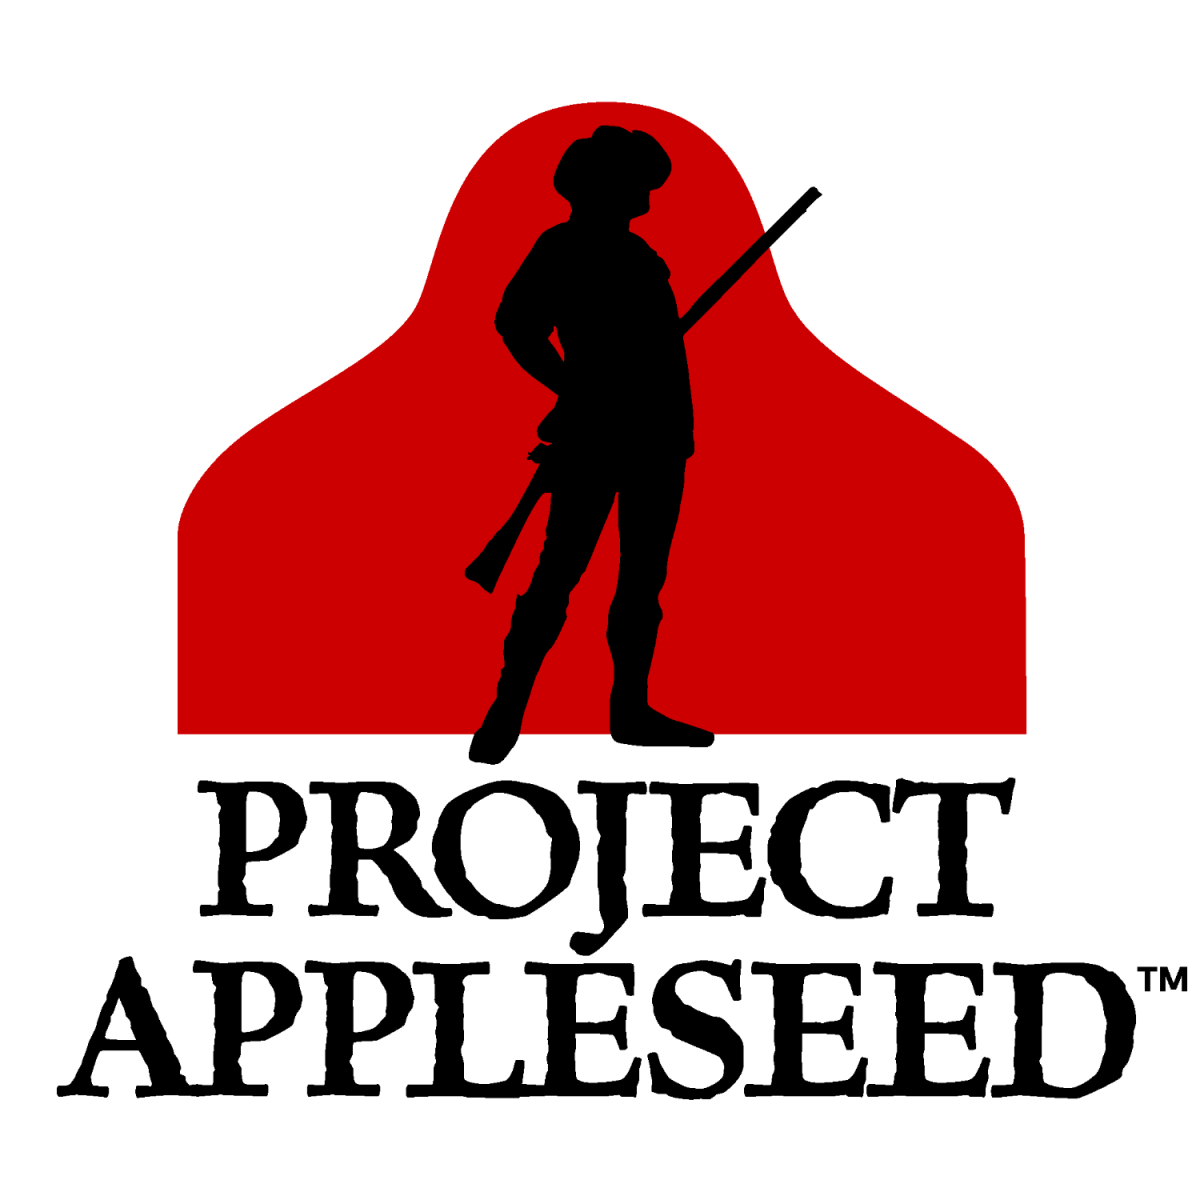 Project Appleseed™ - Rifle Clinic & Stories of the American Revolution